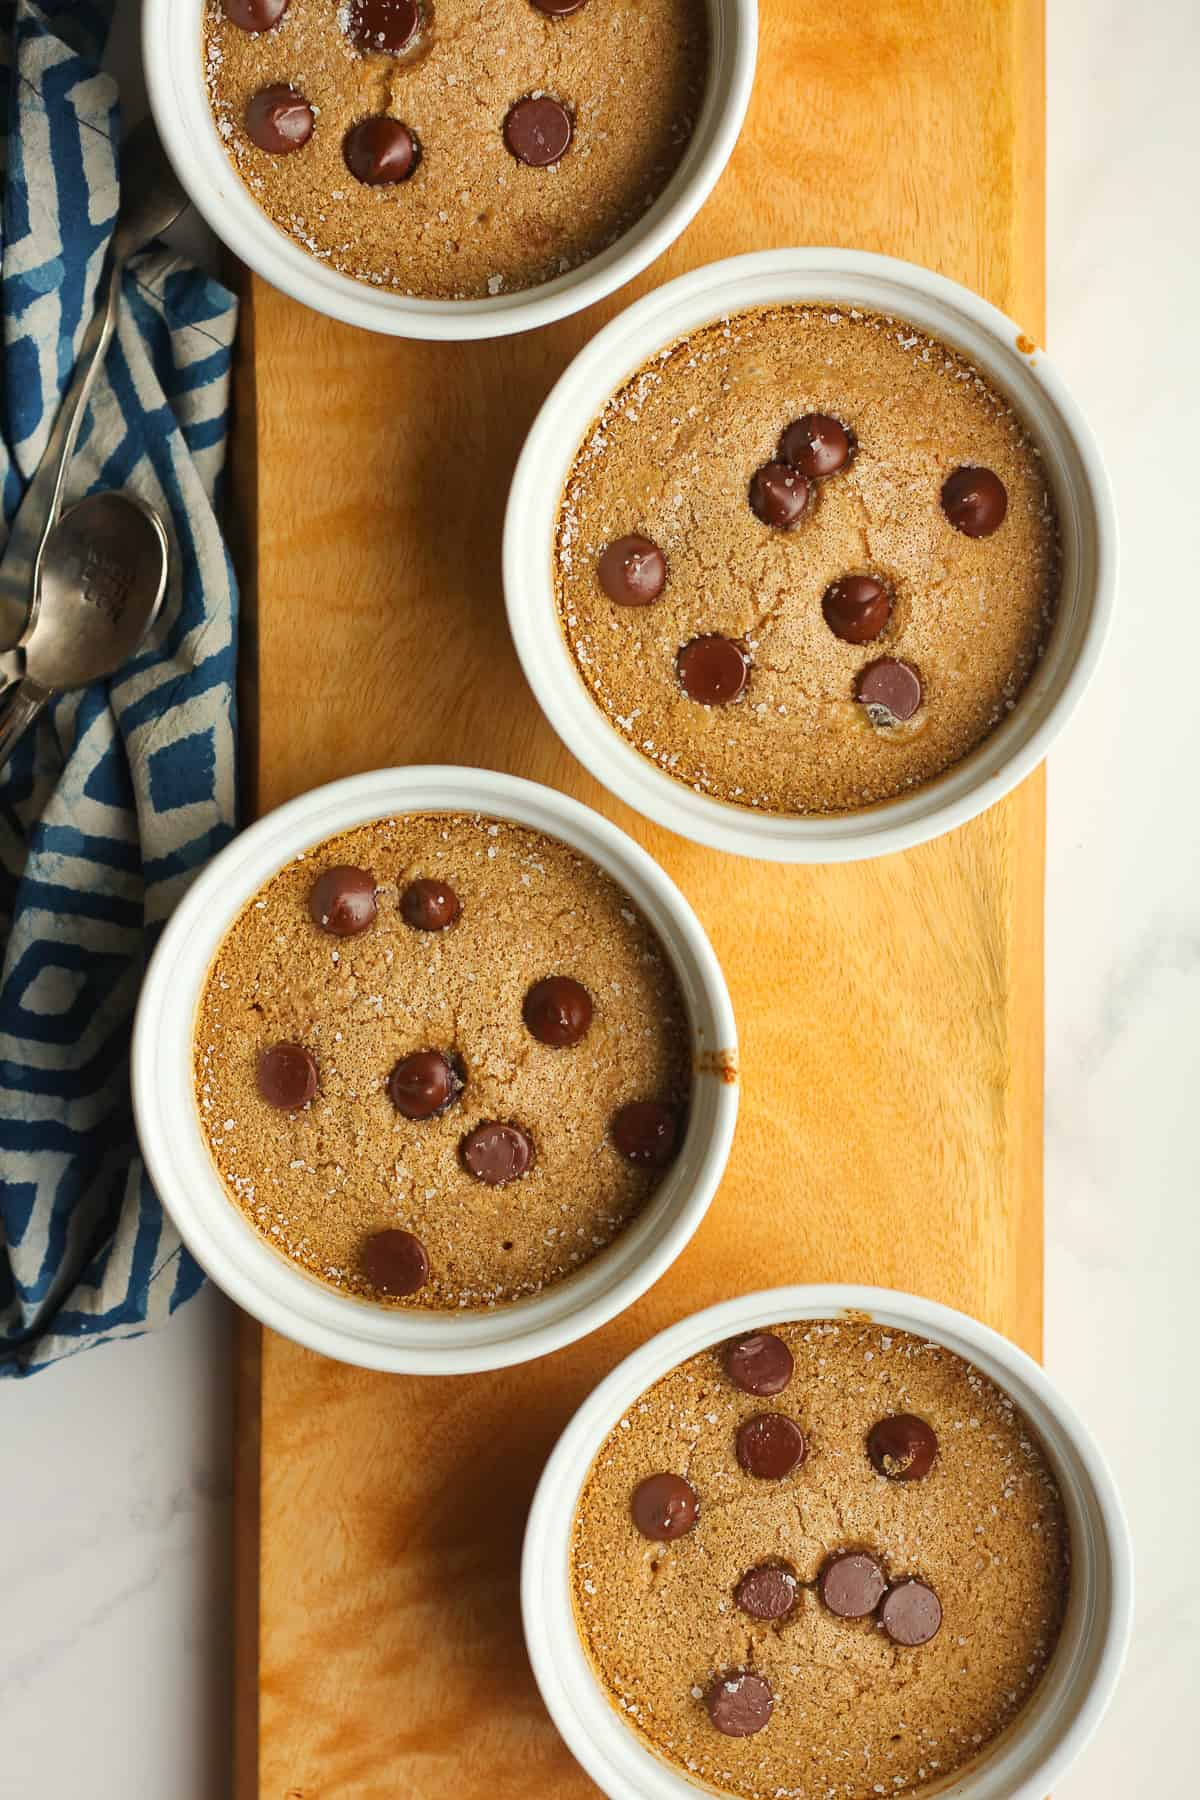 Four bowls of chocolate chip baked oatmeal.